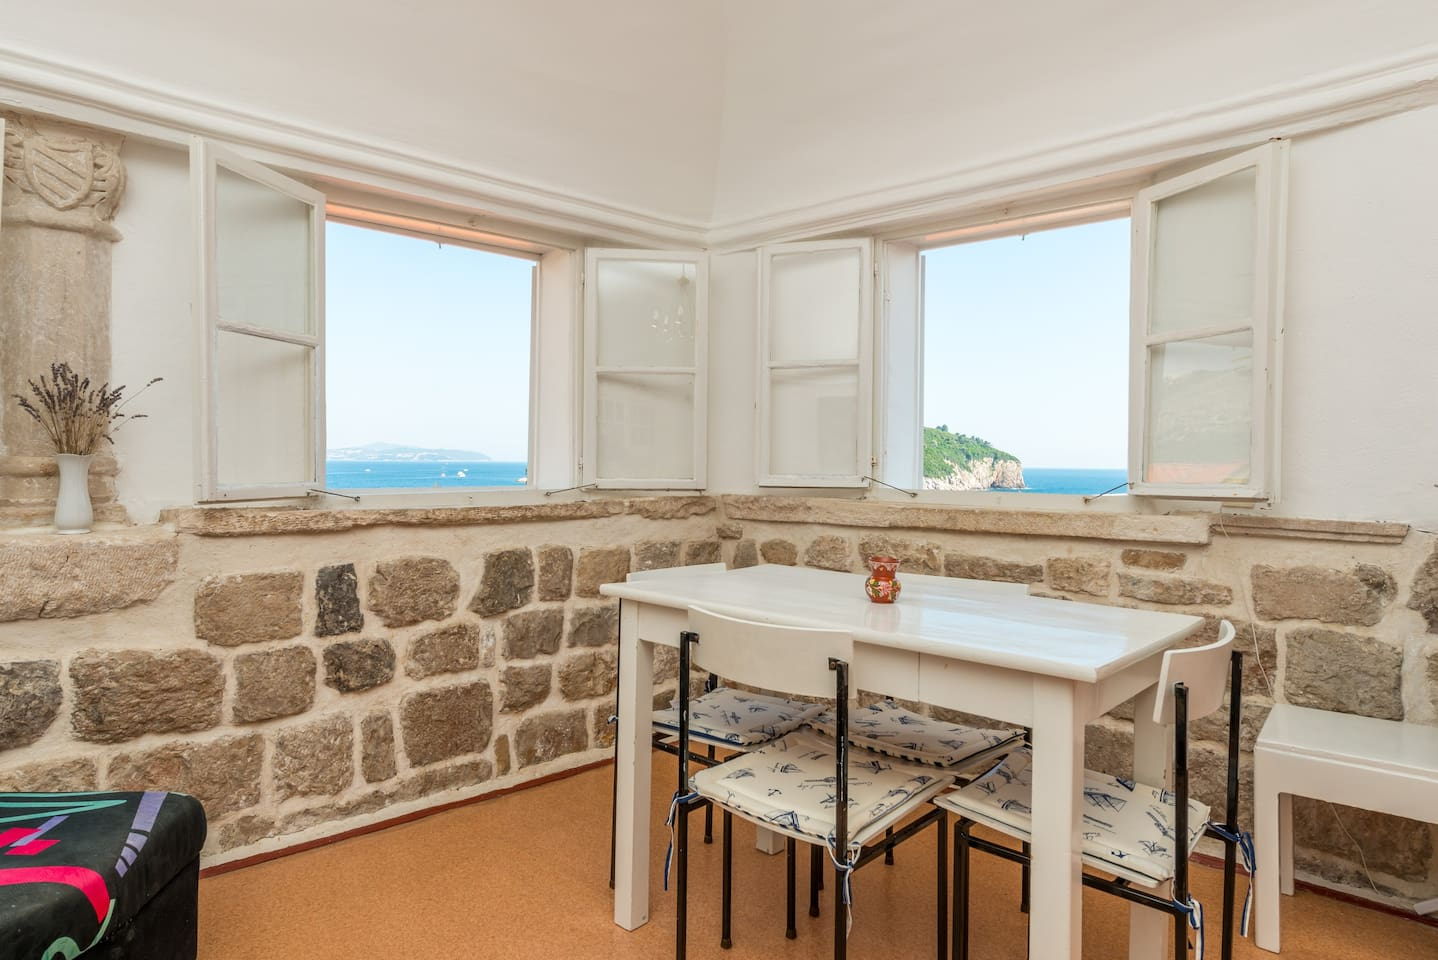 The living room overlooking the city walls provides a fantastic view.